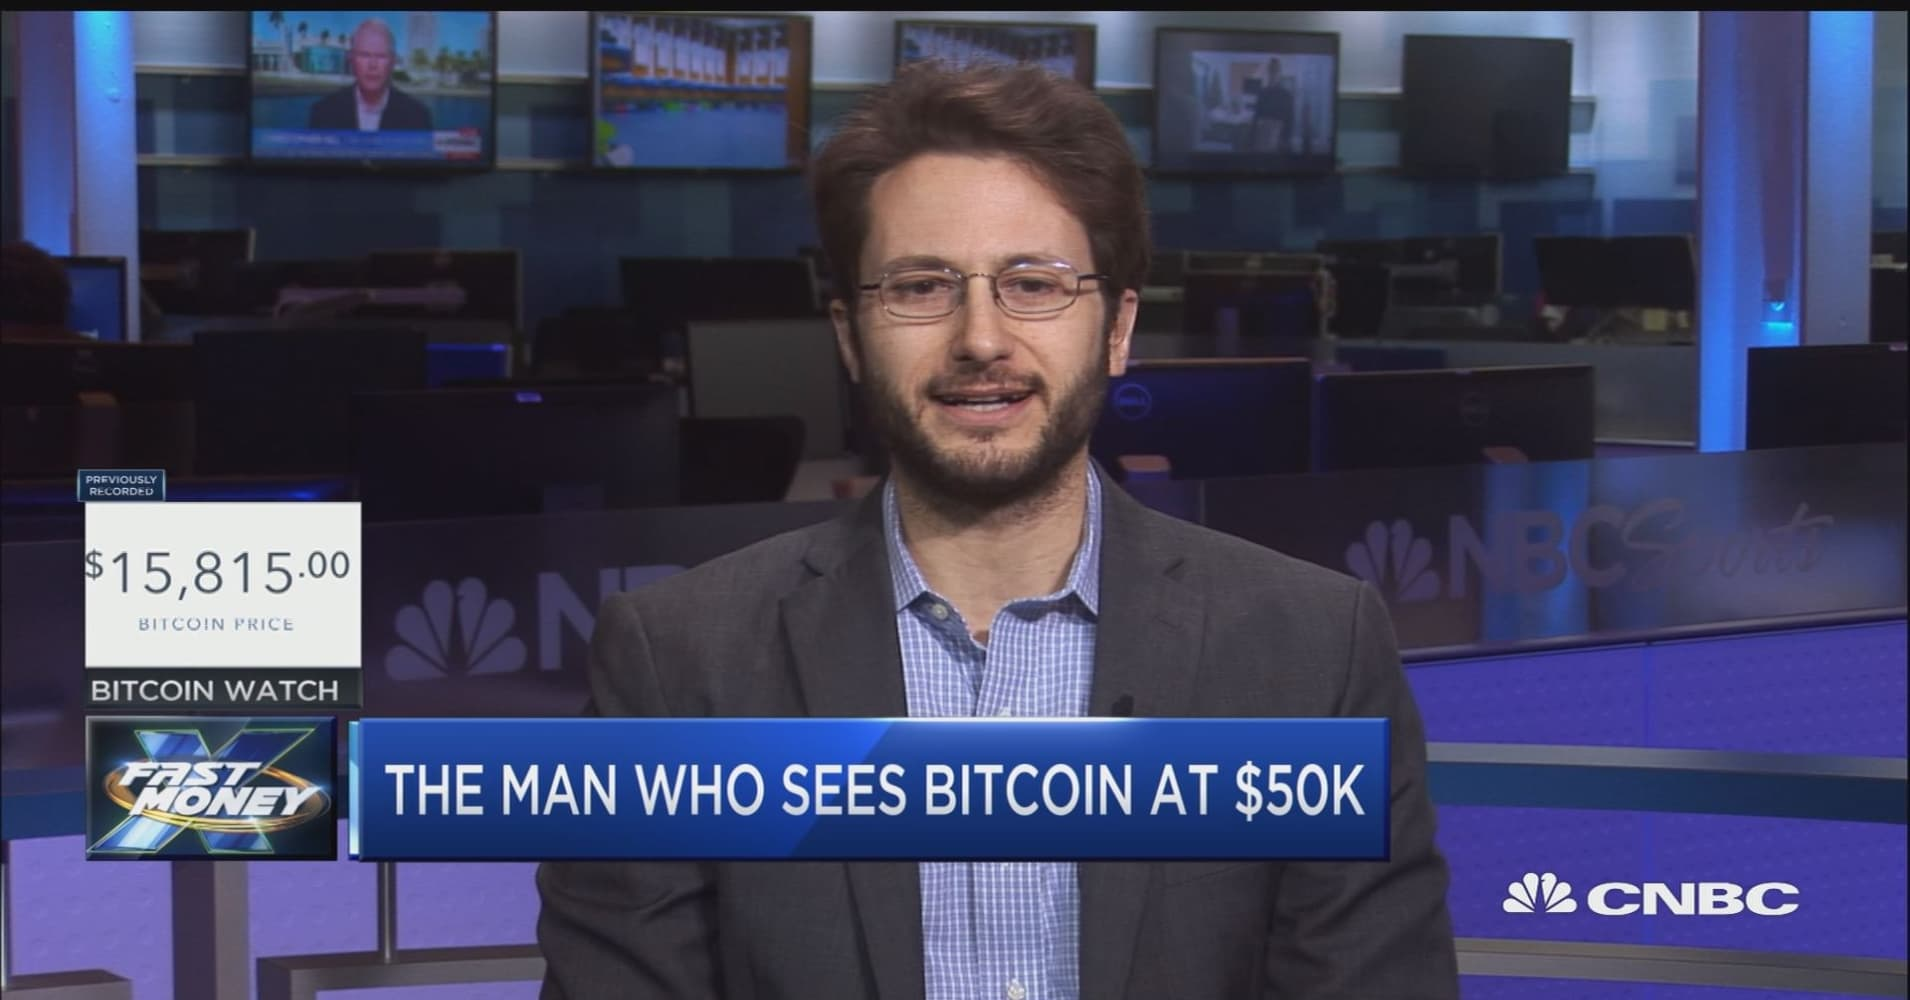 Man behind massive bet that bitcoin could hit $50,000